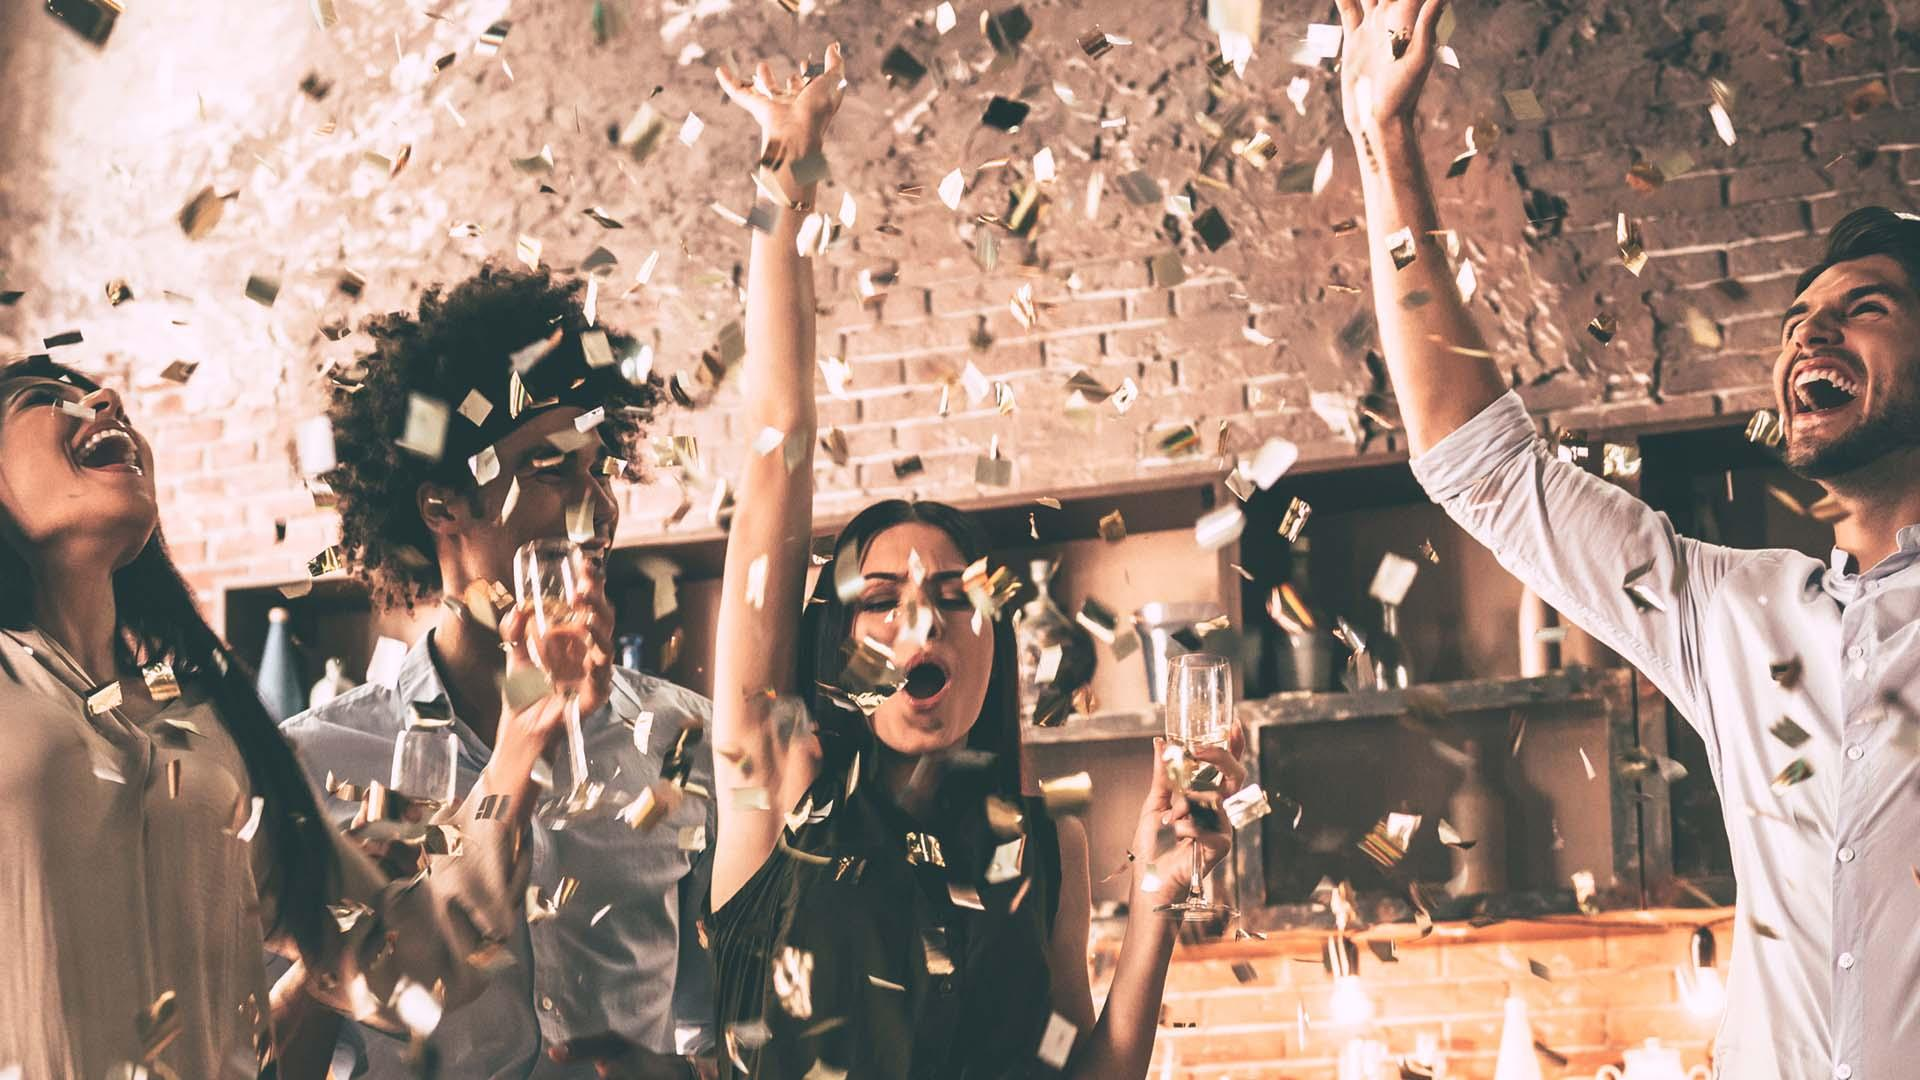 People partying in confetti